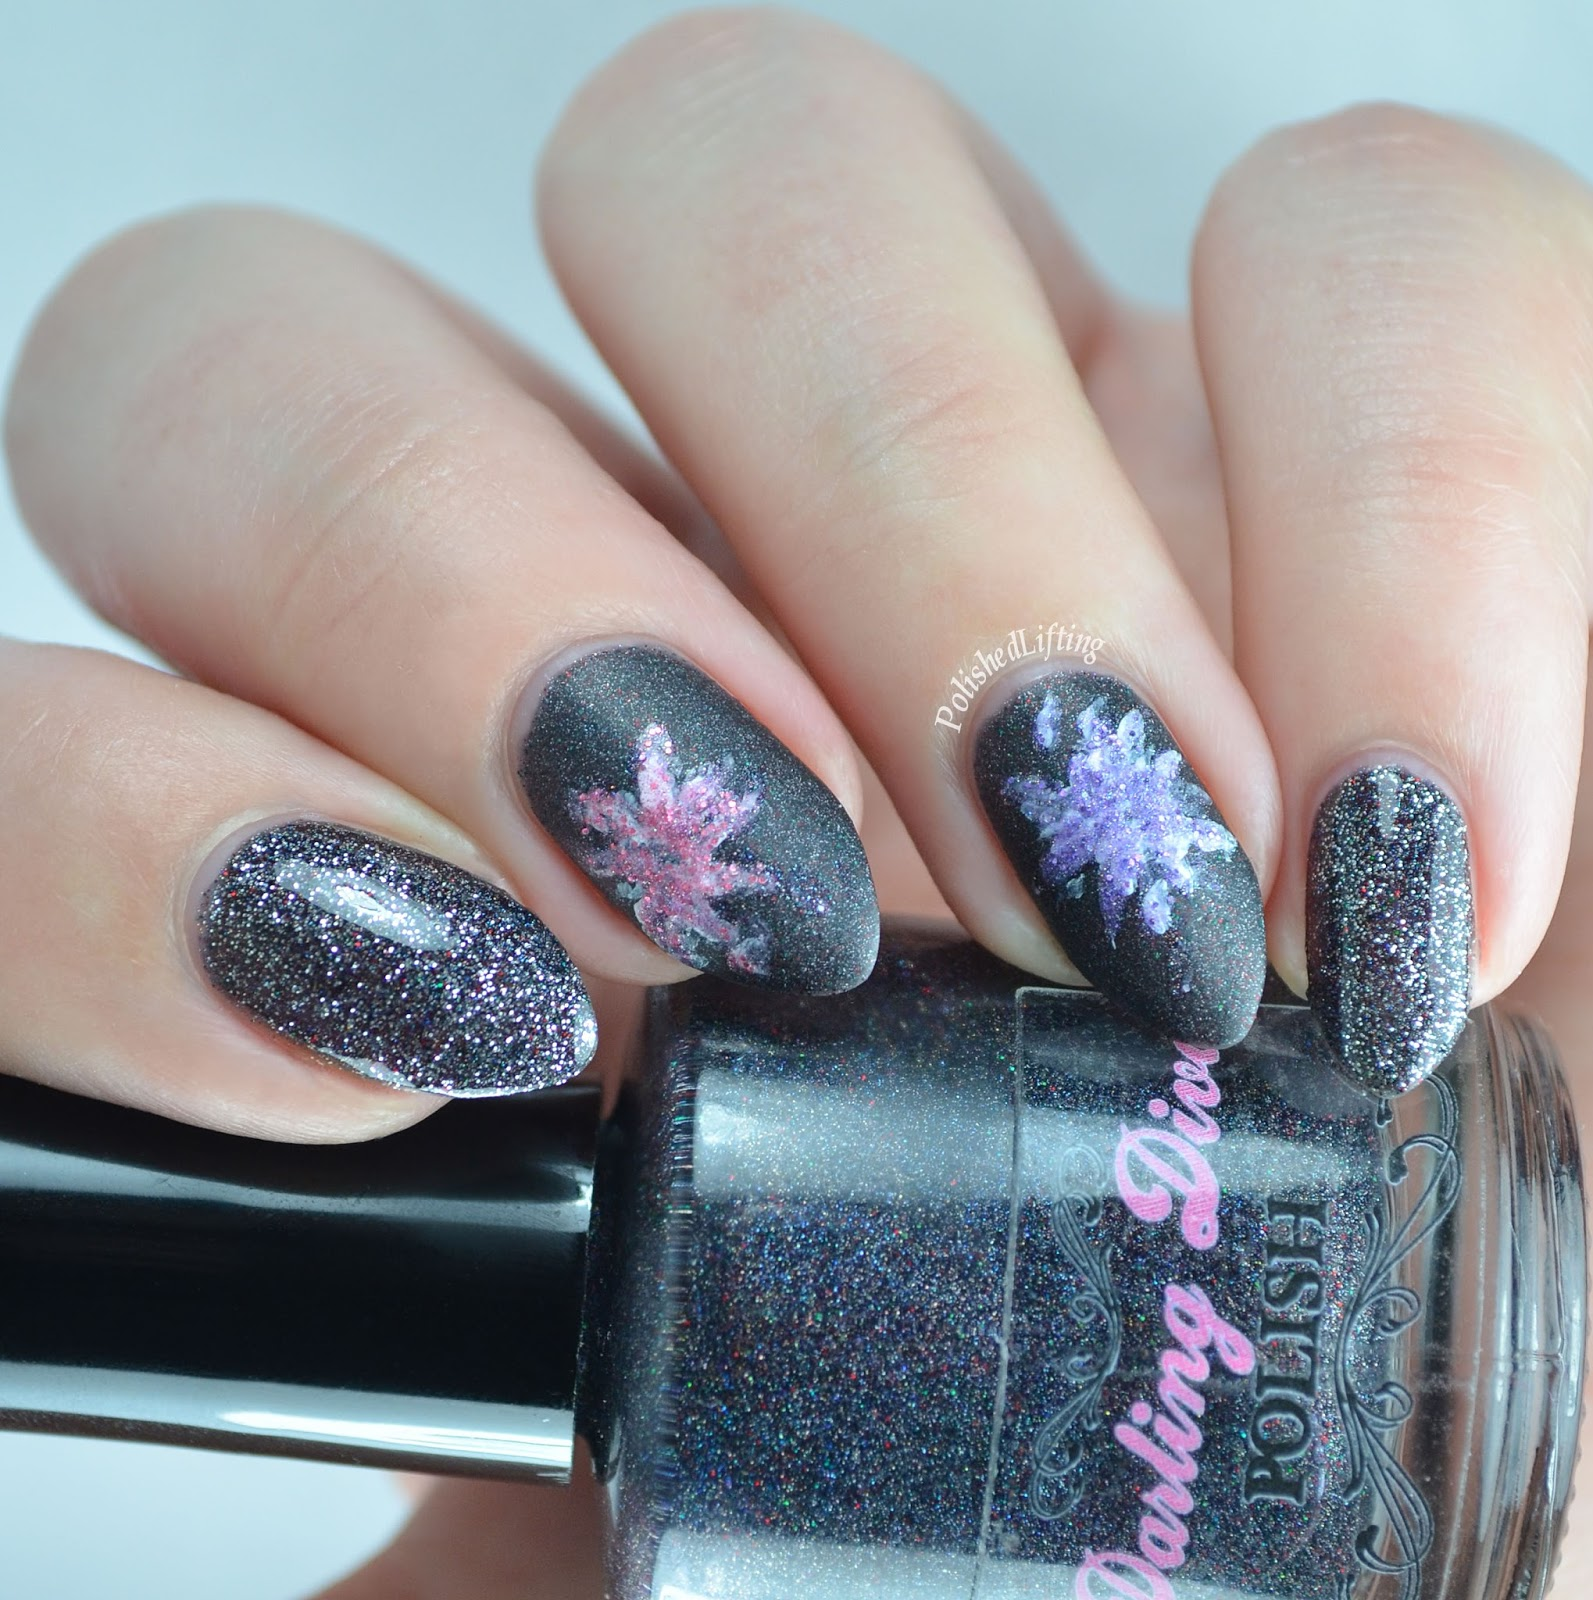 New Years Nail Polish: Polished Lifting: New Years Eve Nail Art And A Year In Review